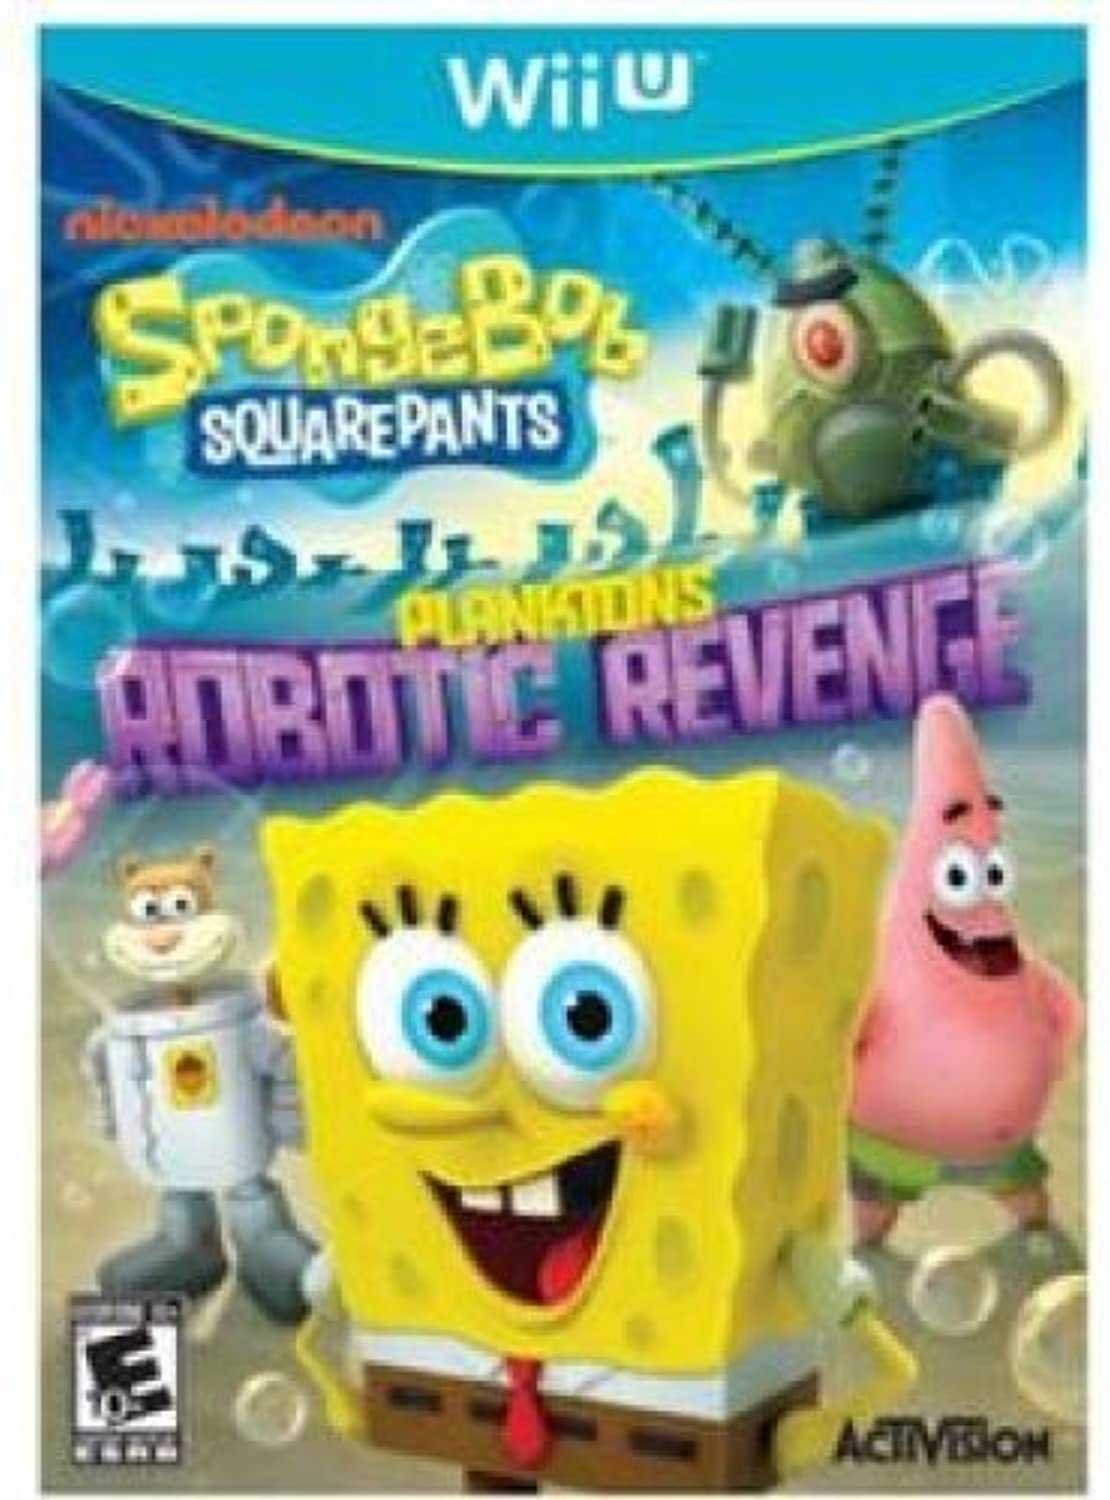 SpongeBob SquarePants  Plankton's Robotic Revenge Wii U by Blizzard Entertainment